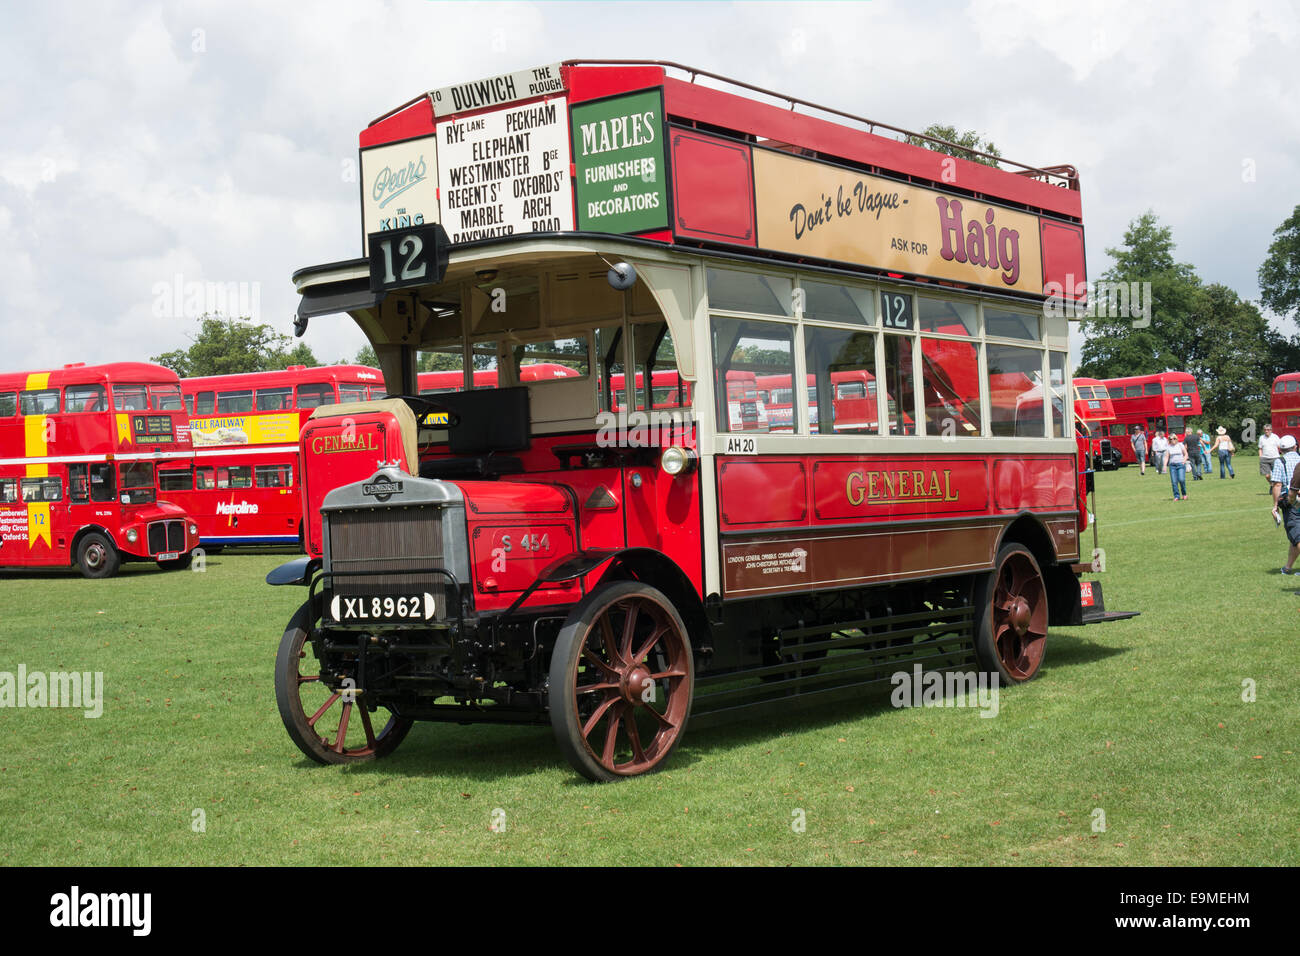 A preserved AEC S type on display at the 2014 Alton Bus Rally & Running day. The bus dates back to the 1920's. - Stock Image